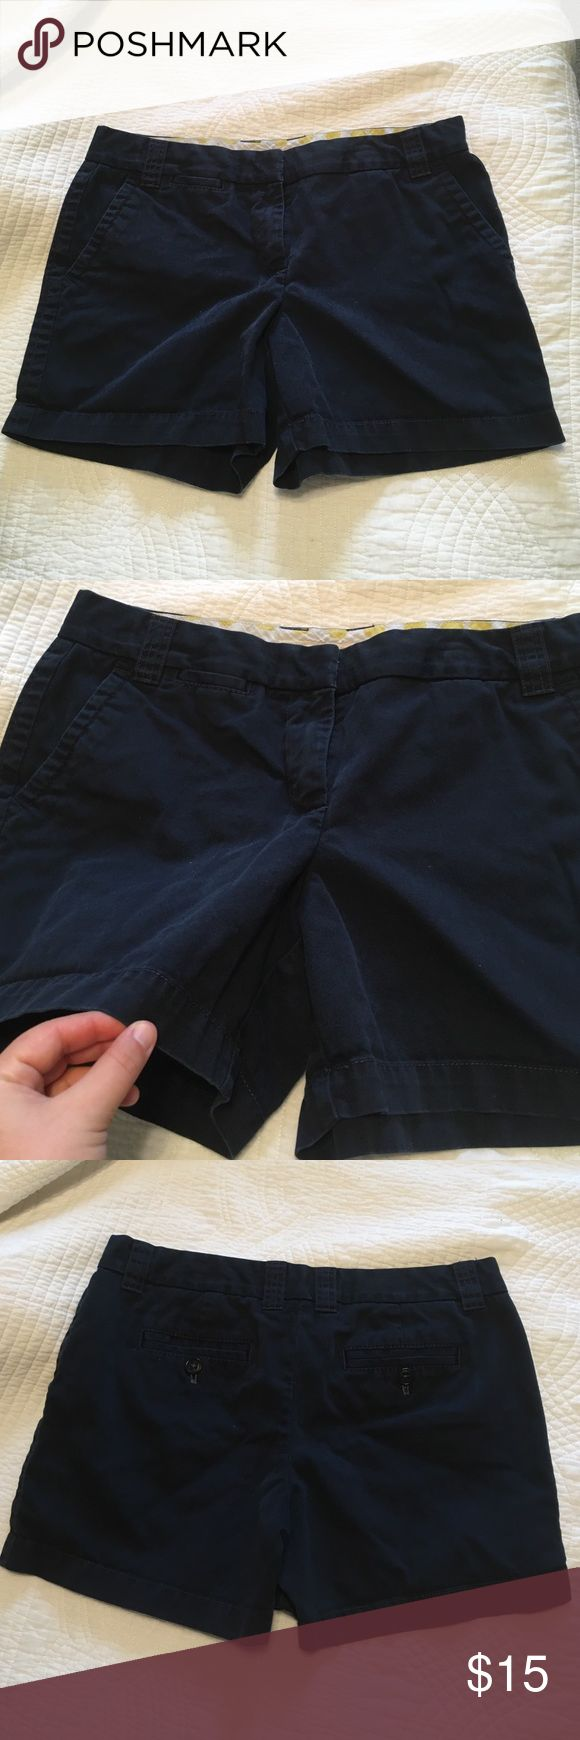 """Navy Blue J. Crew 5"""" Chino Shorts Classic Preppy Great condition! Worn once! Navy blue, 5"""" inseam, size 8, from J. Crew J. Crew Shorts"""